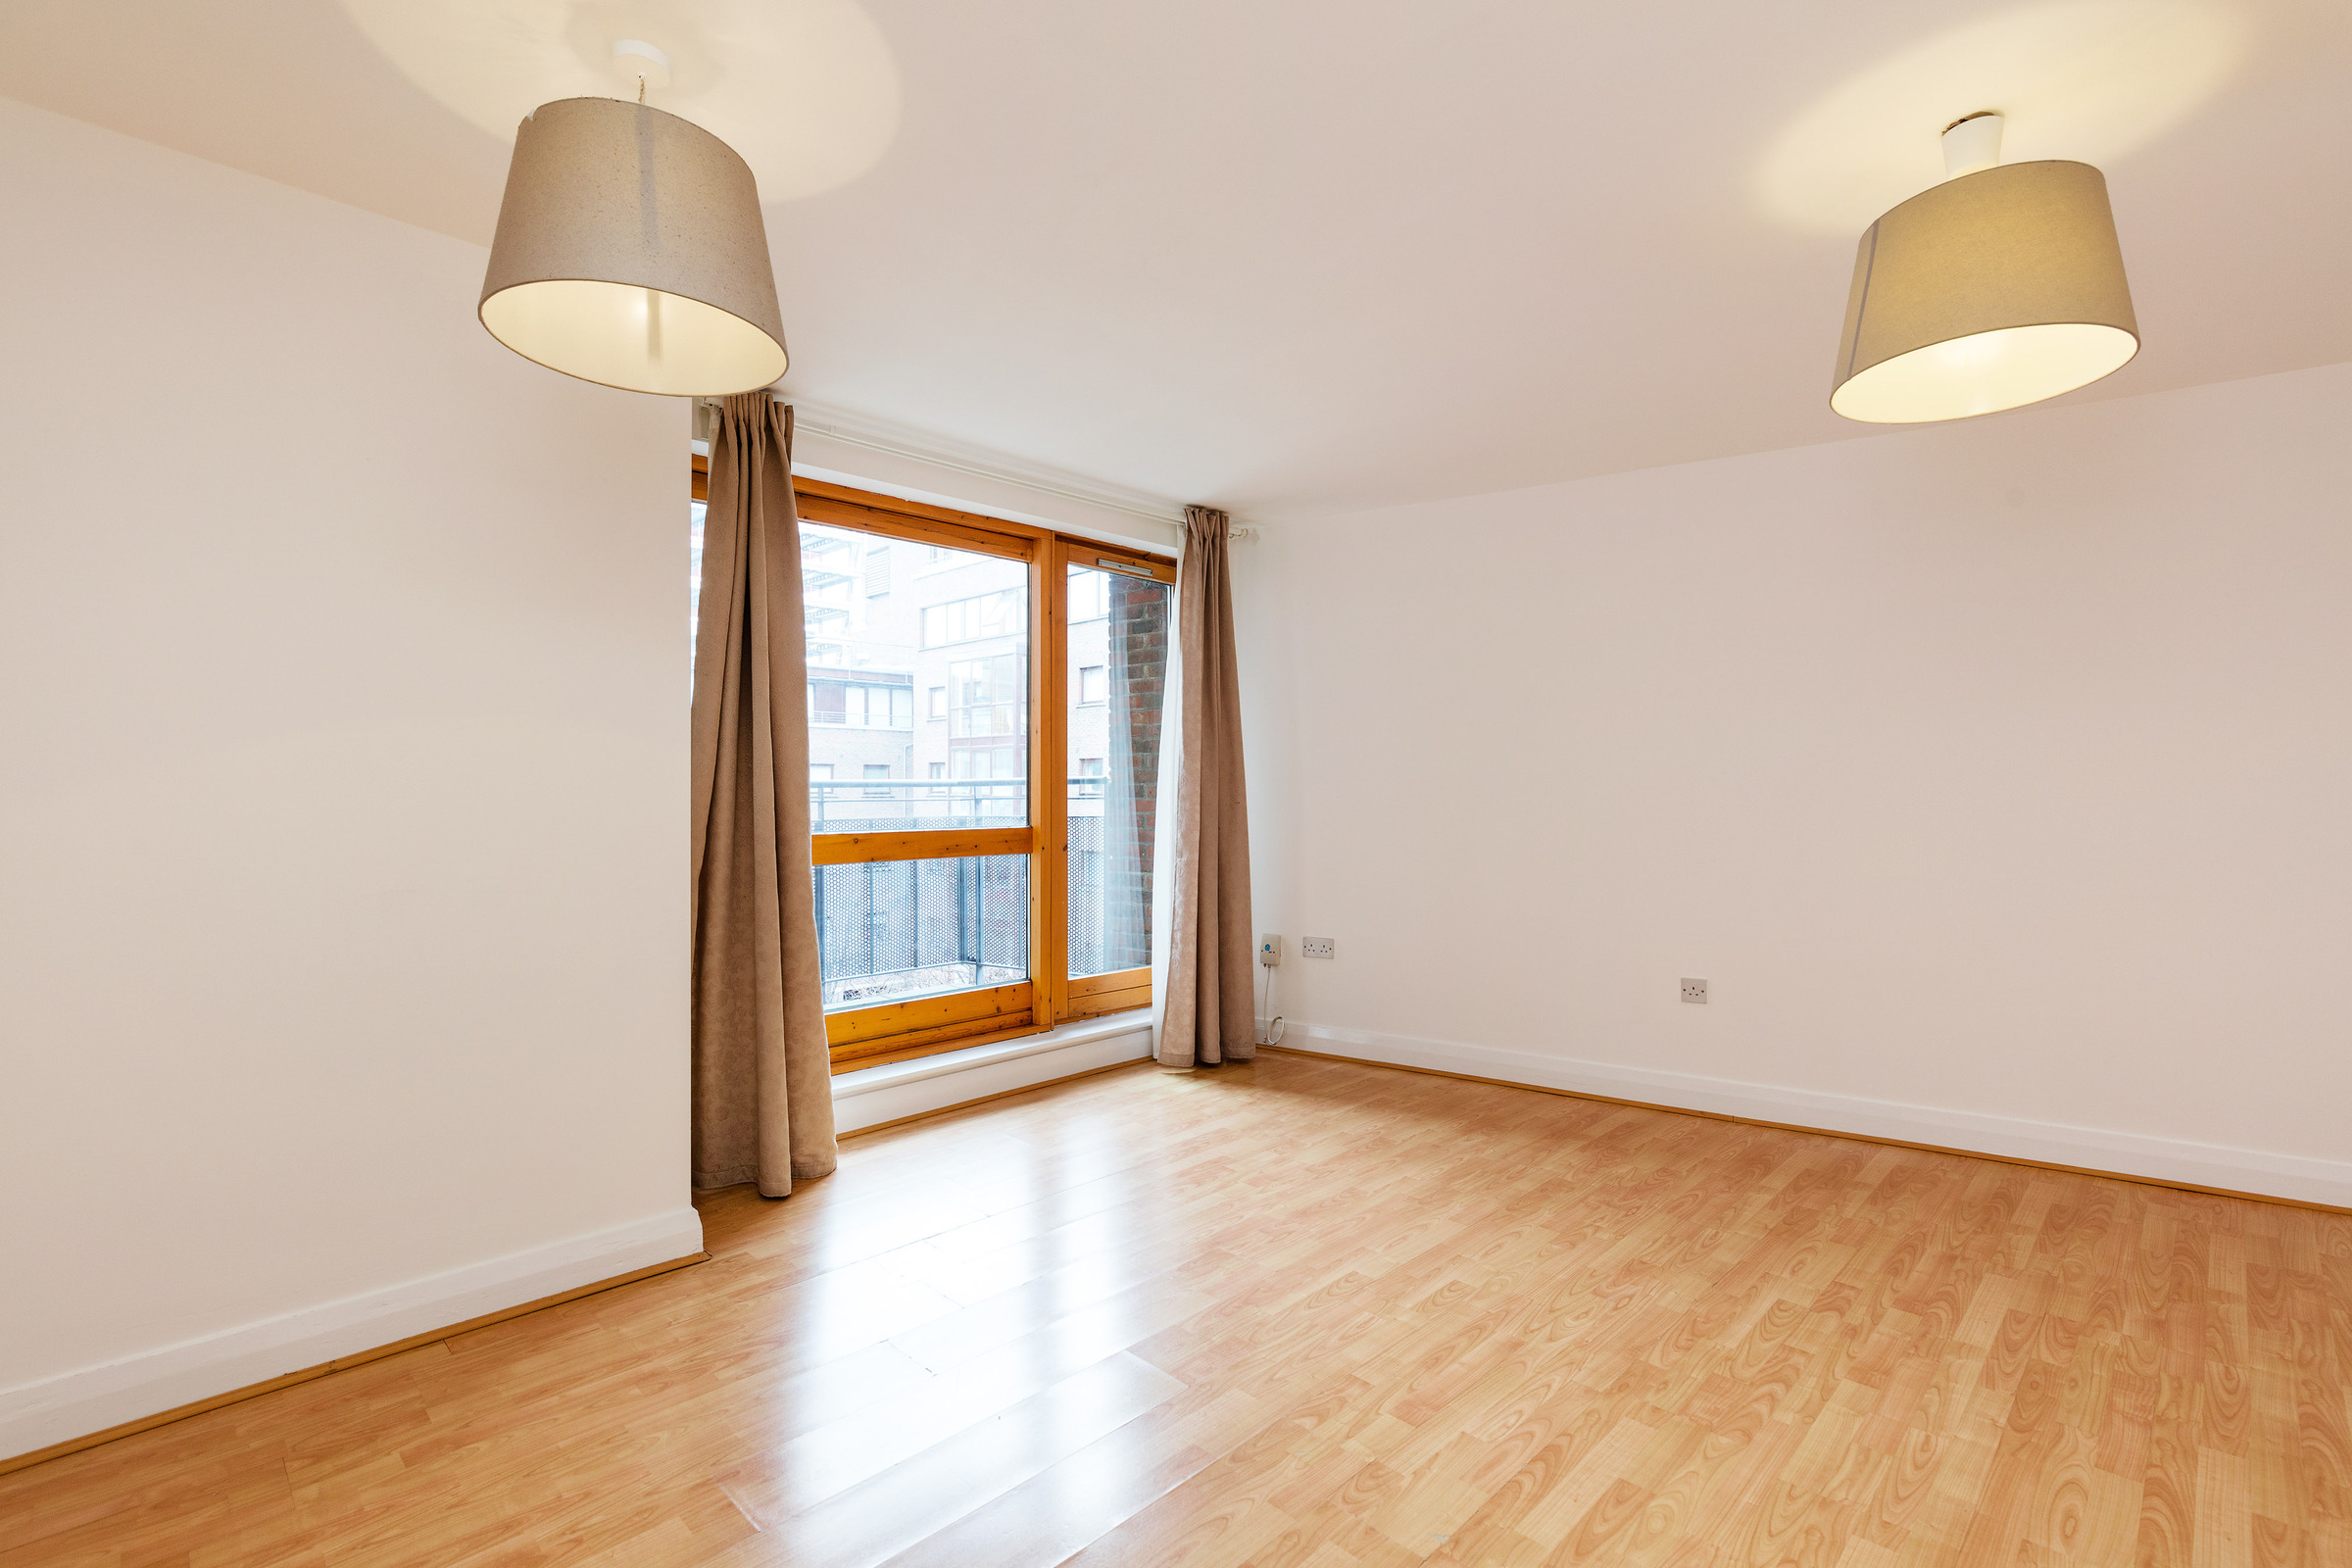 Apartment 227, The Camden, Grand Canal Dock, Dublin 2